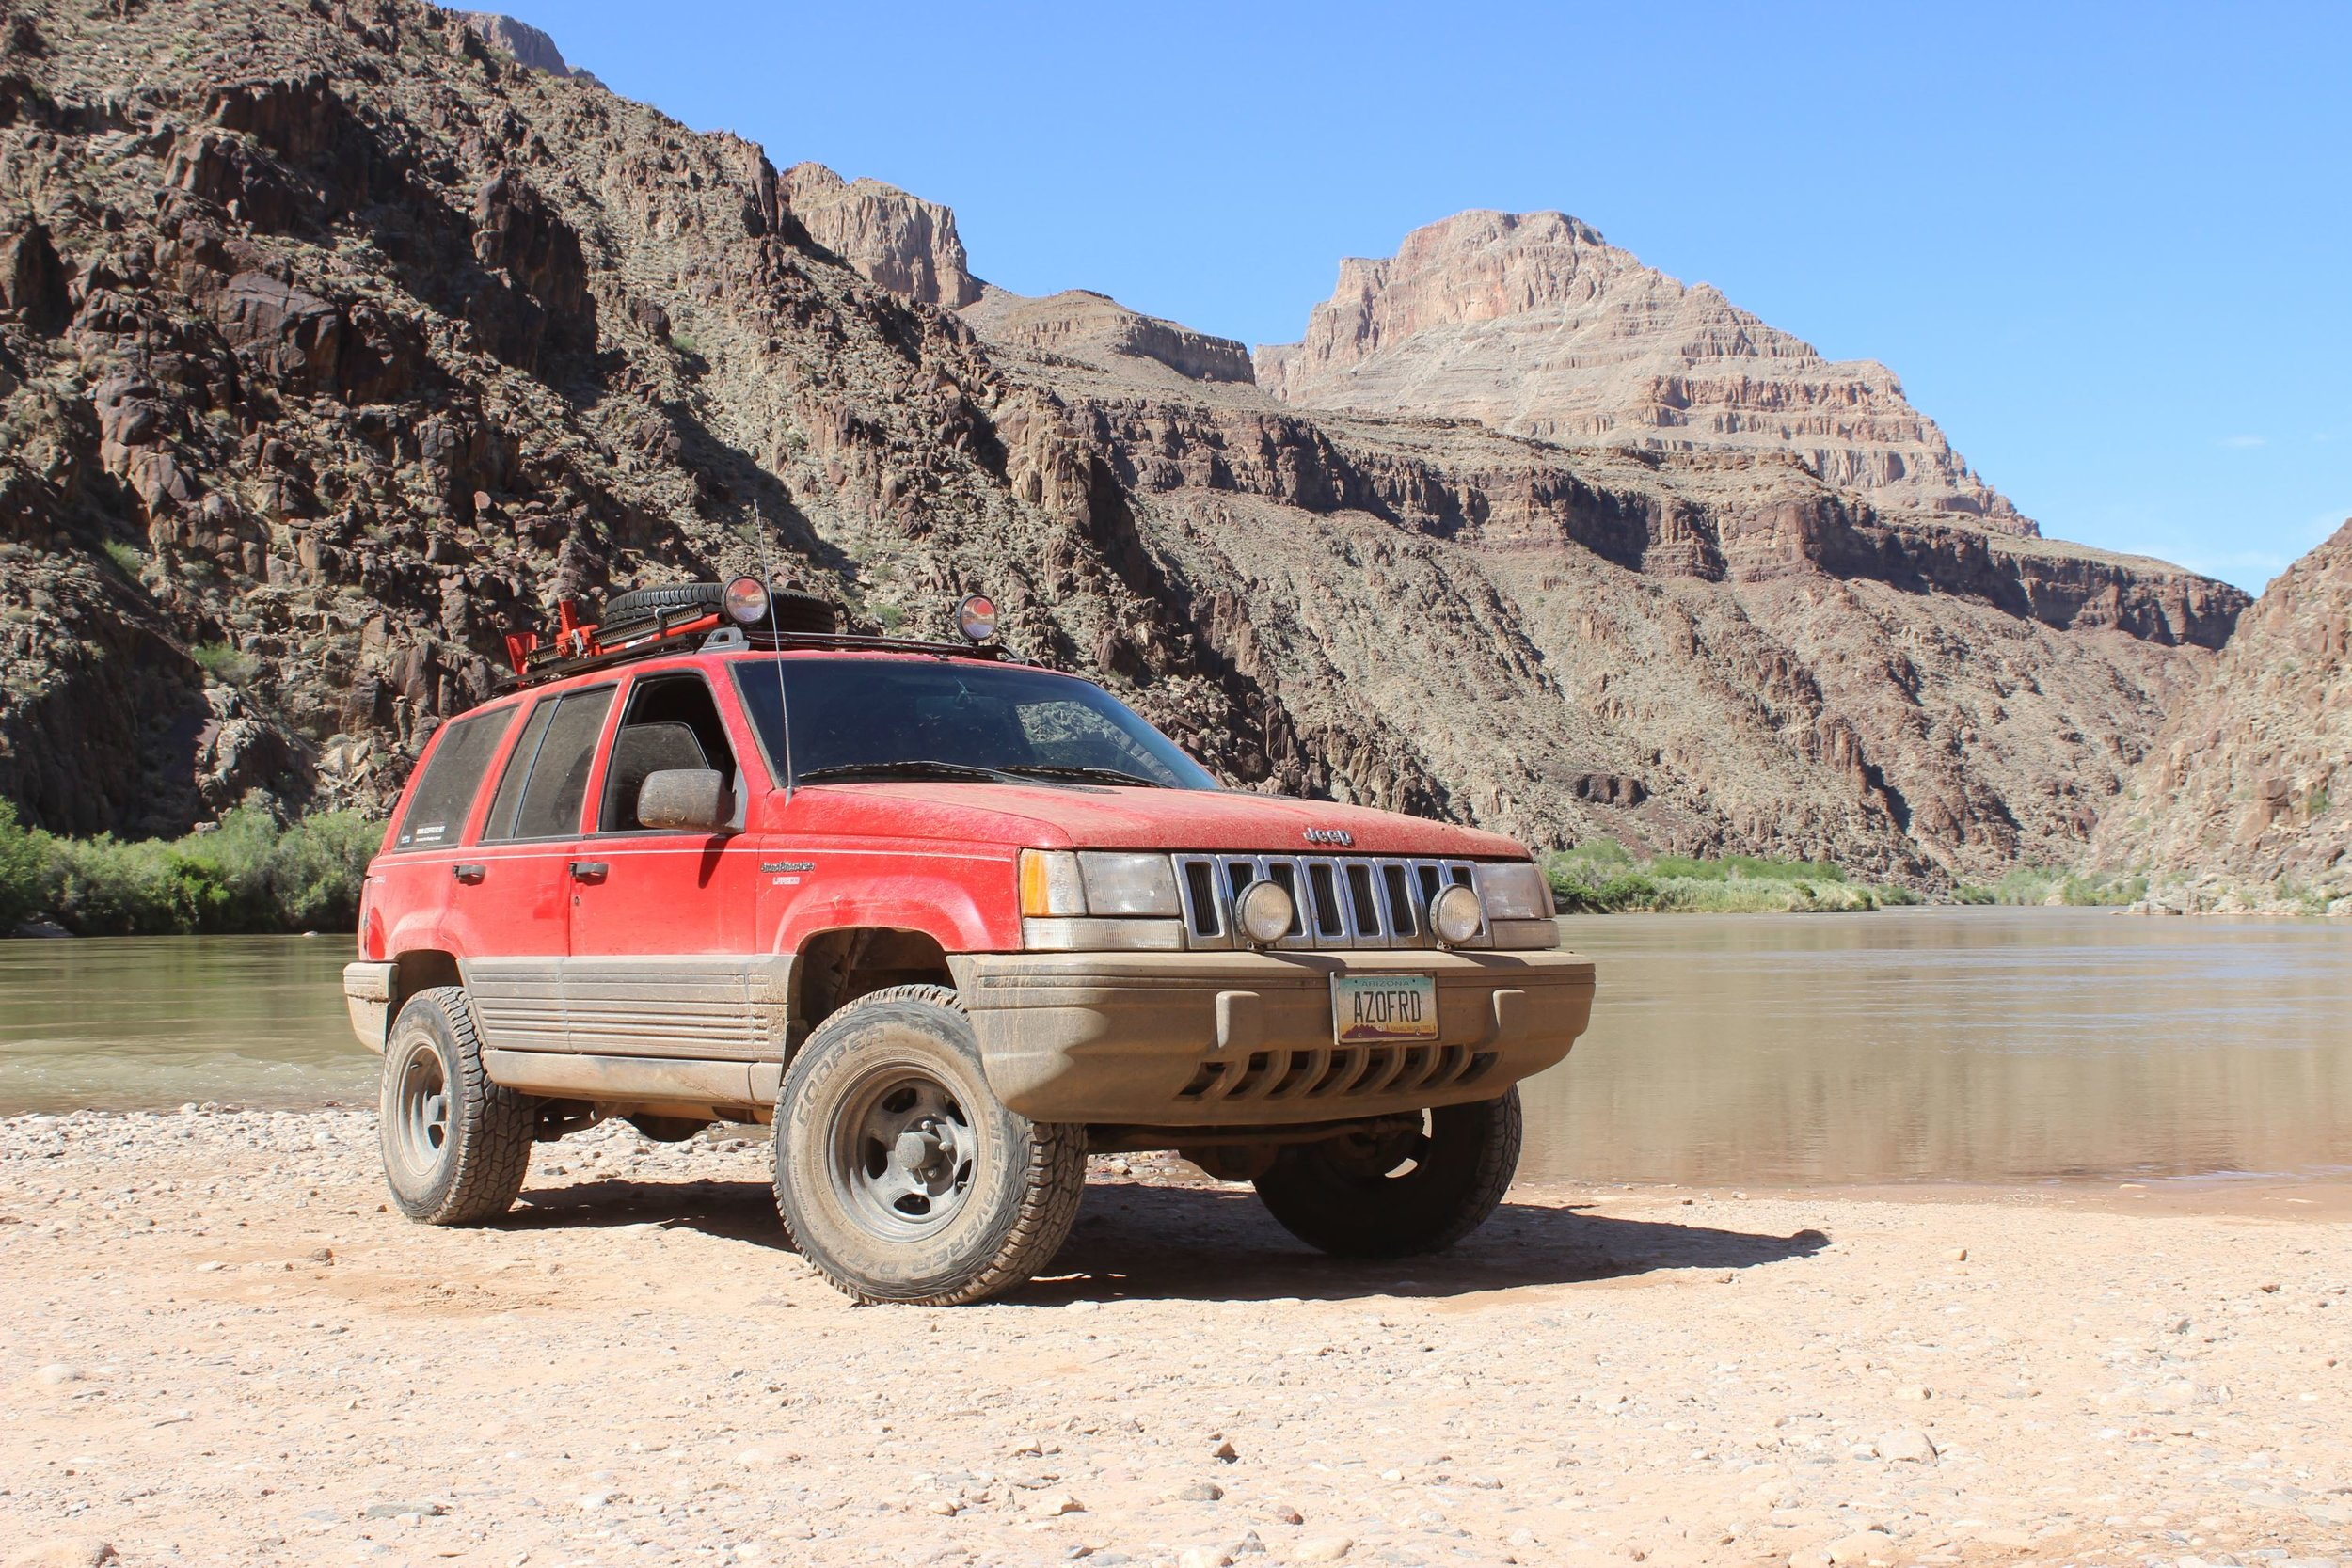 At the Colorado River at the bottom of the Grand Canyon